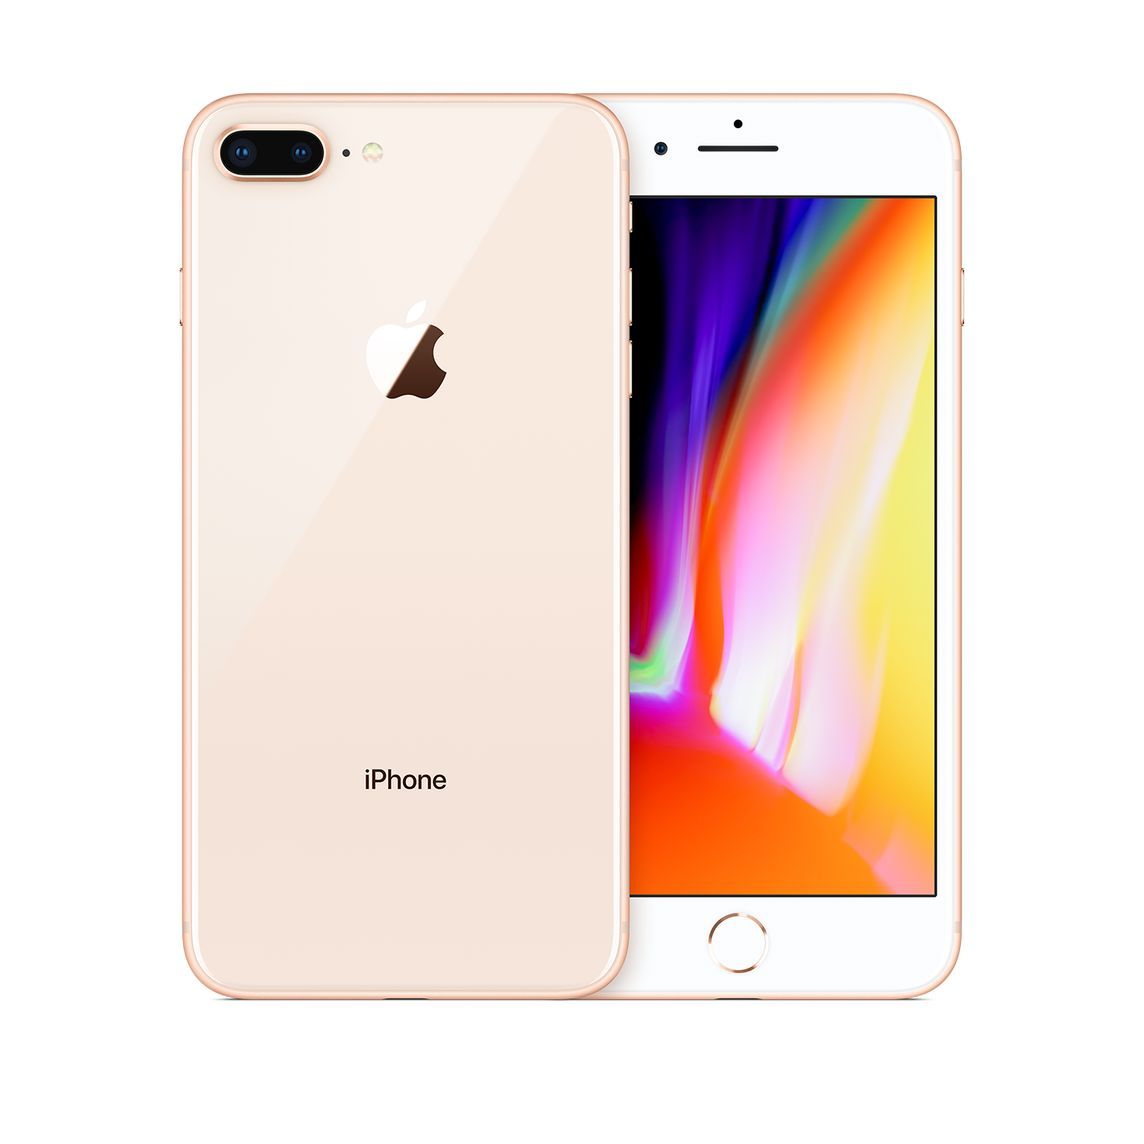 Refurbished iPhone 8 Plus 64GB - Gold (Unlocked) - Apple